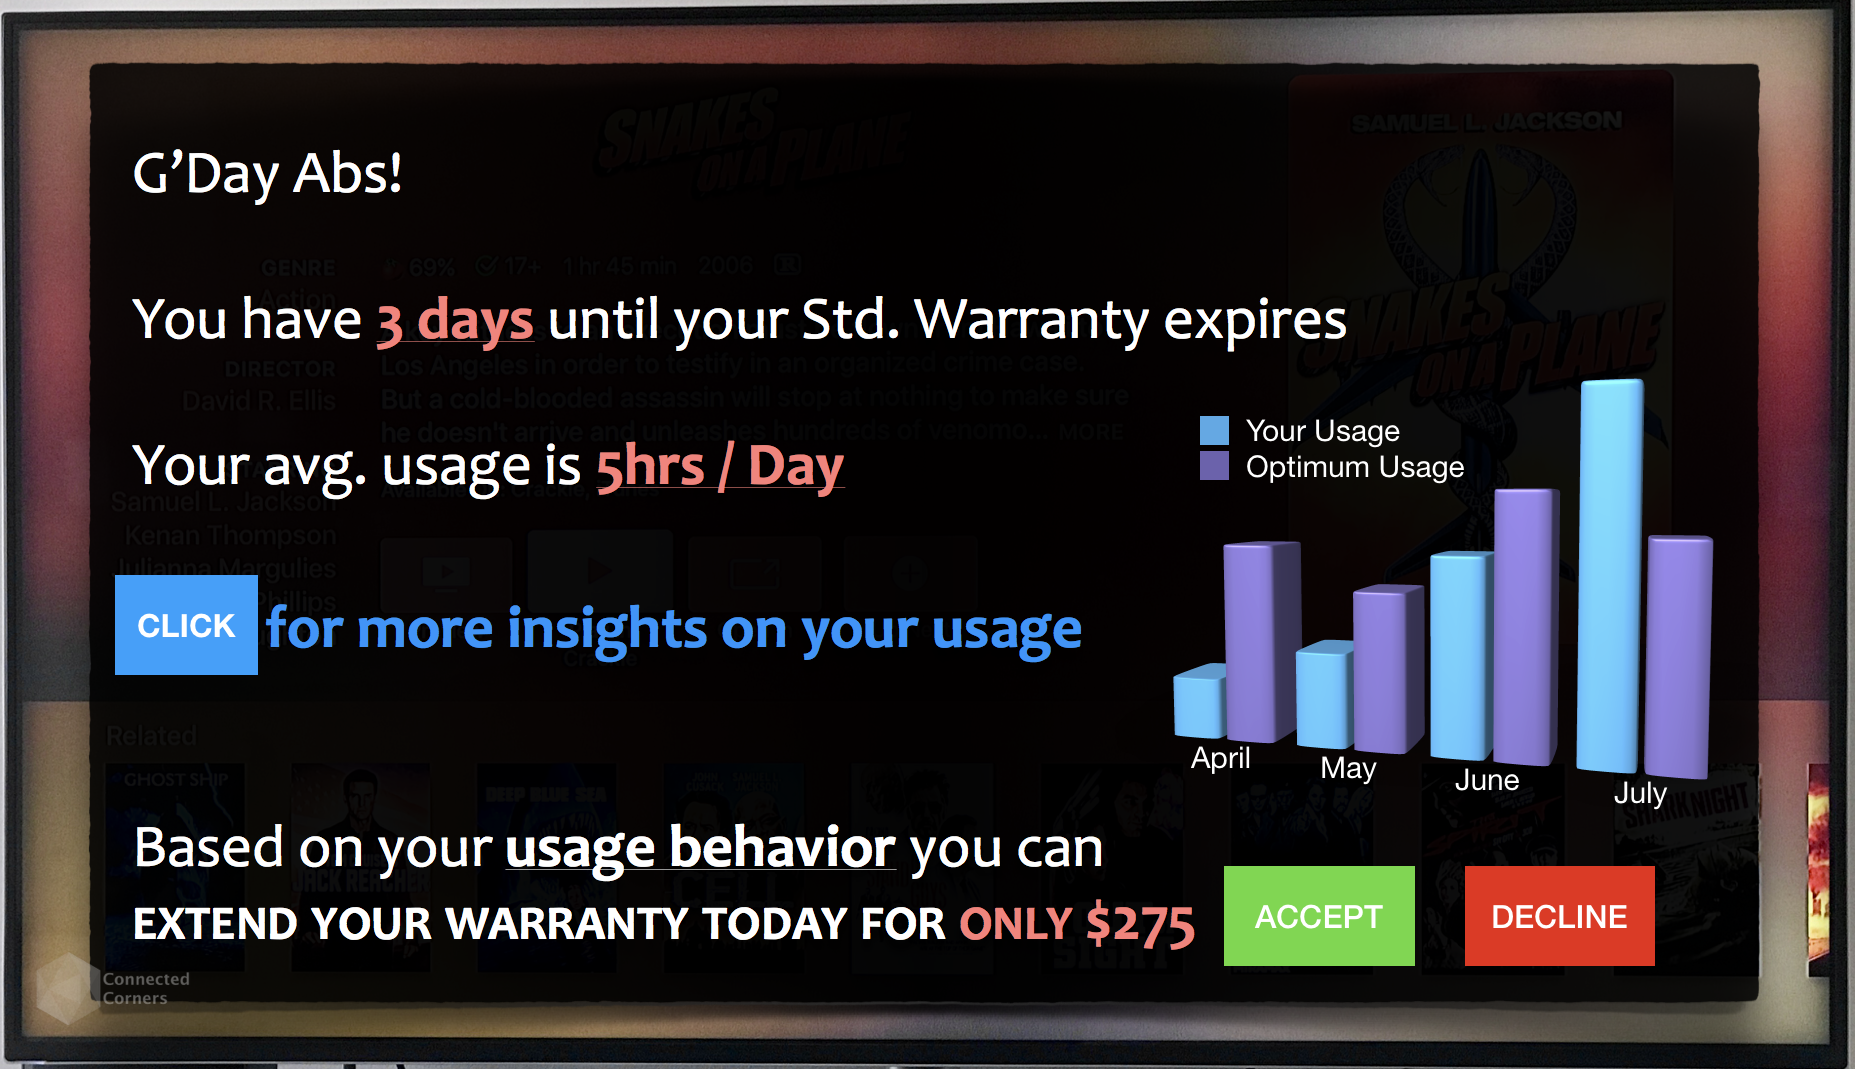 Internet of Warranty: real-time warranty personalization concept - Connected Corners